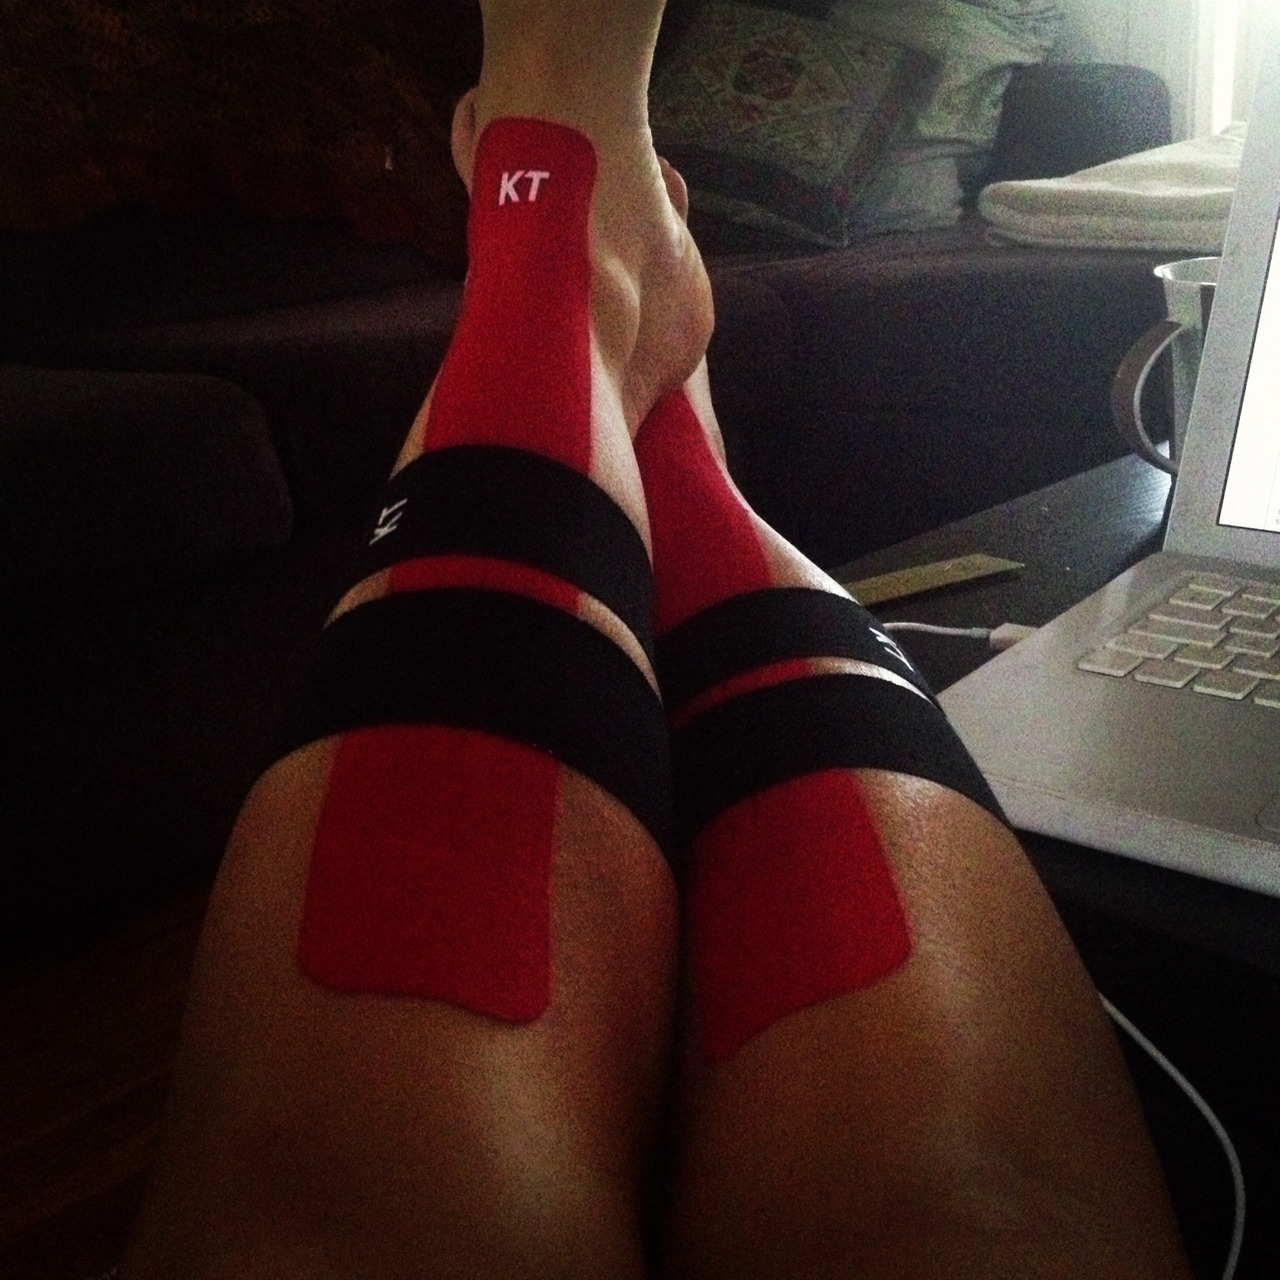 Kt taping my shins! Whoops did a bit to much running